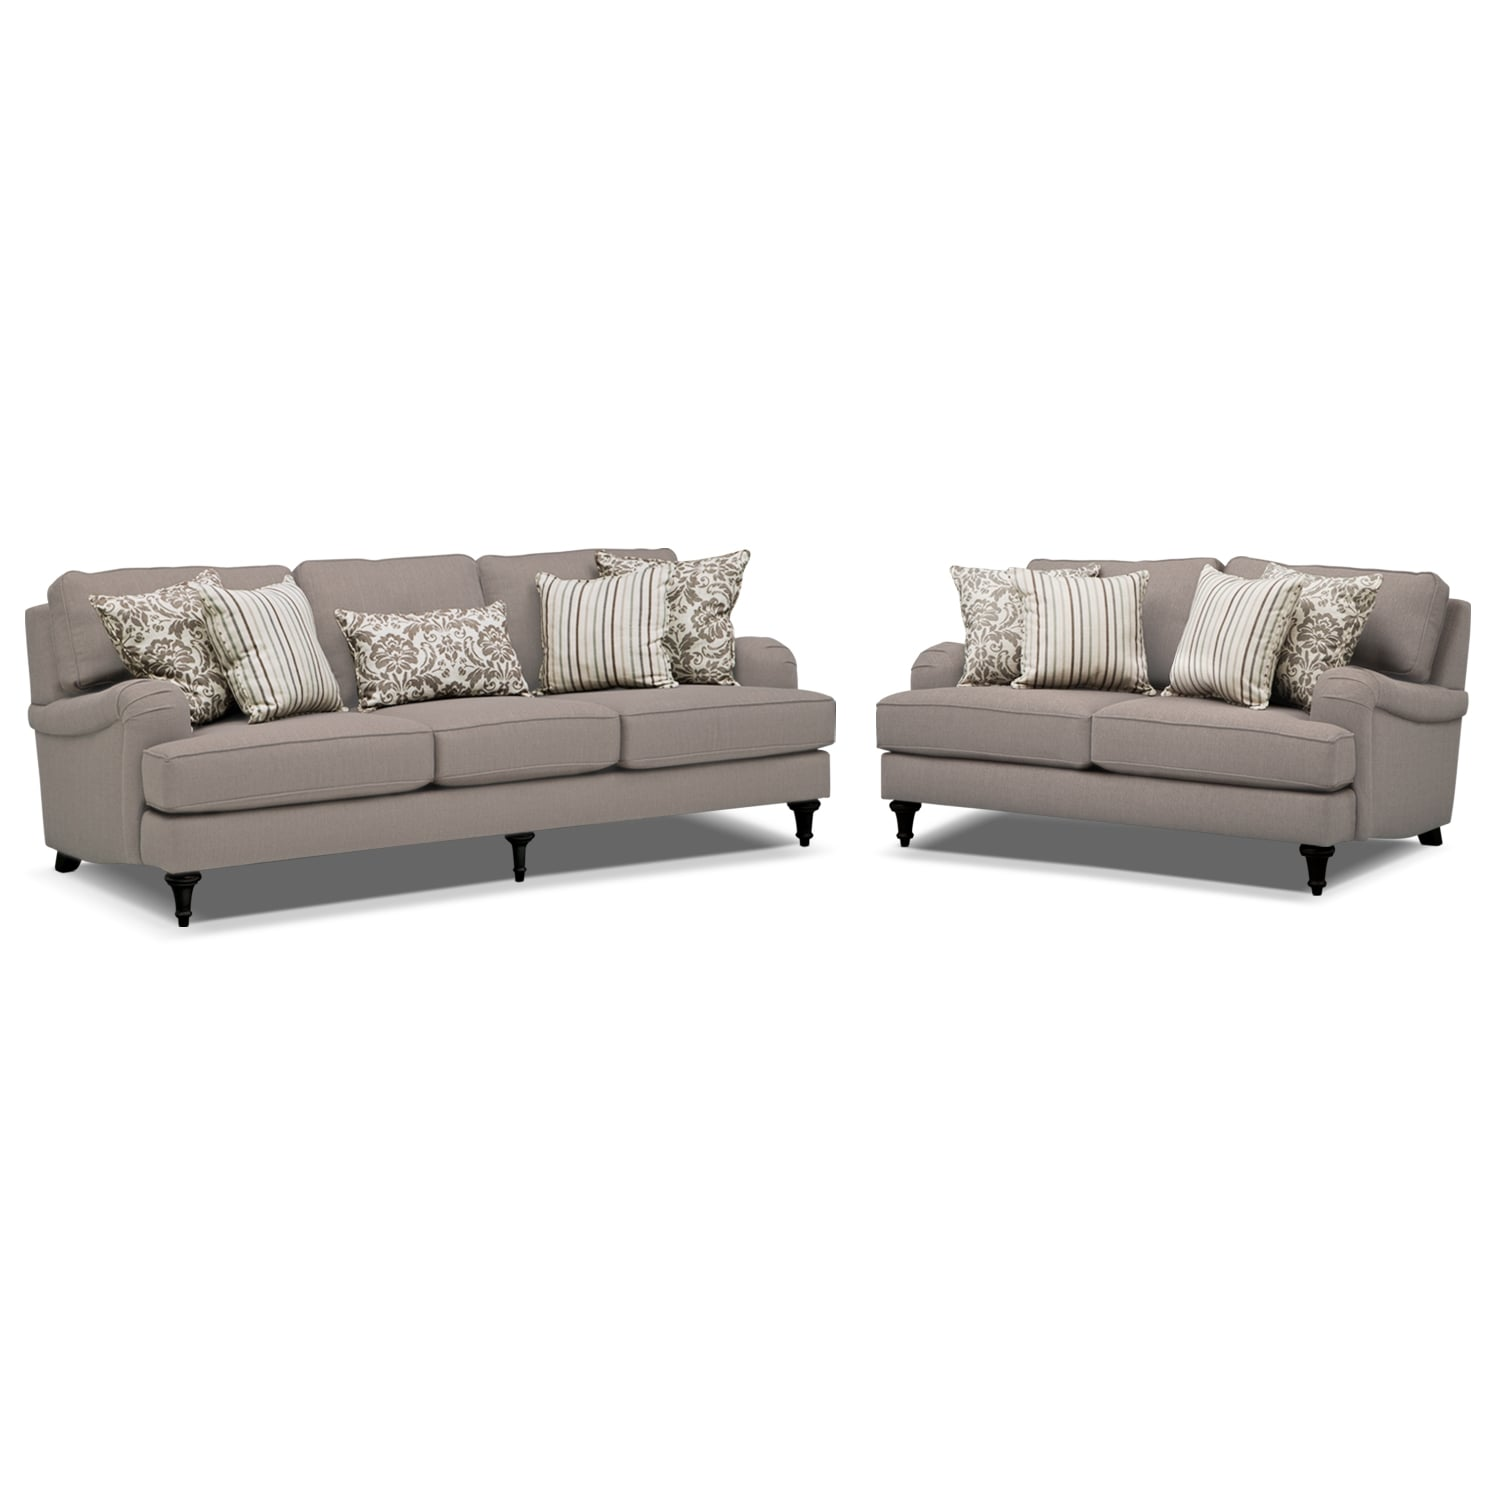 Living Room Furniture - Candice 2 Pc. Living Room